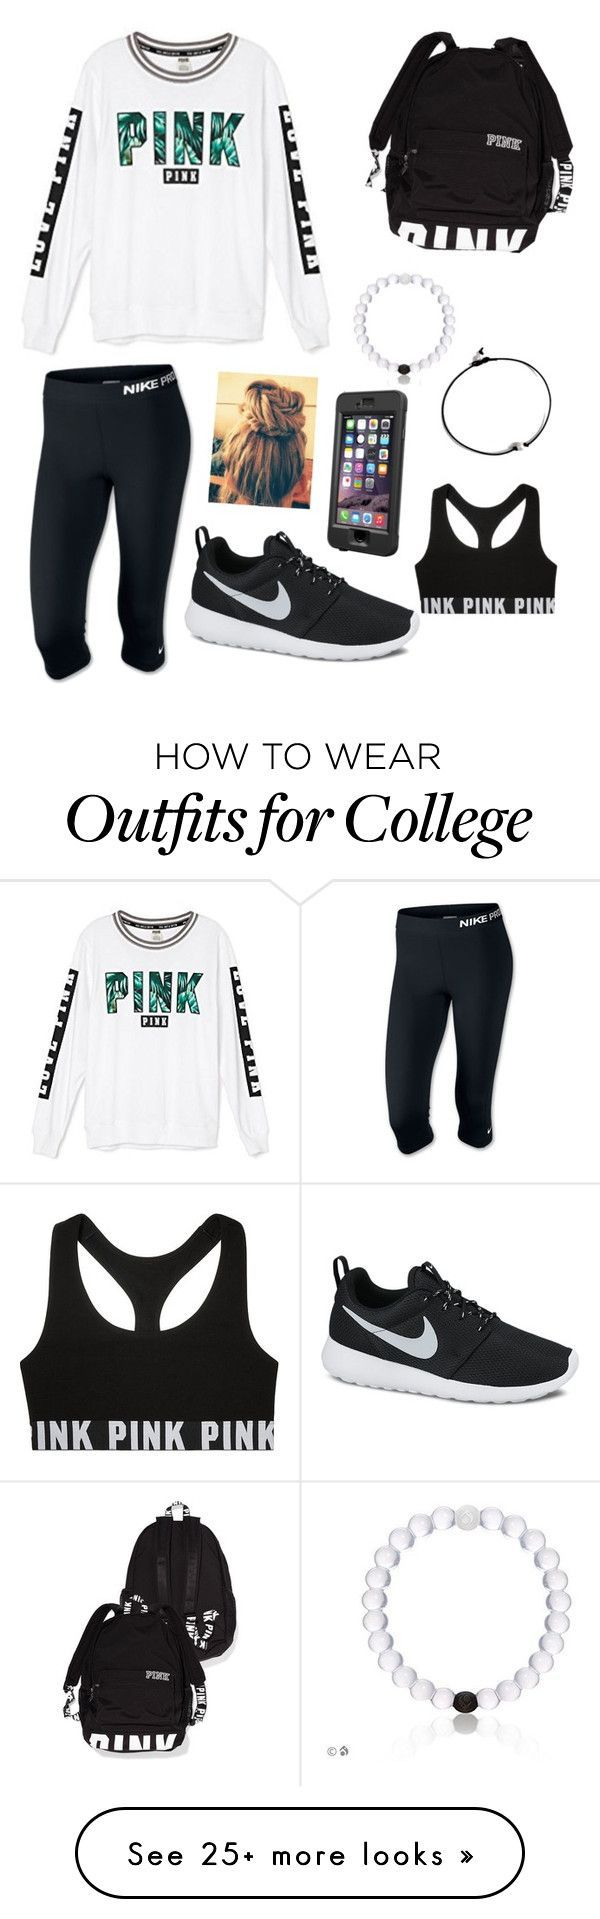 Untitled #51 by samhaines on Polyvore featuring Victoria's Secret, NIKE and LifeProof